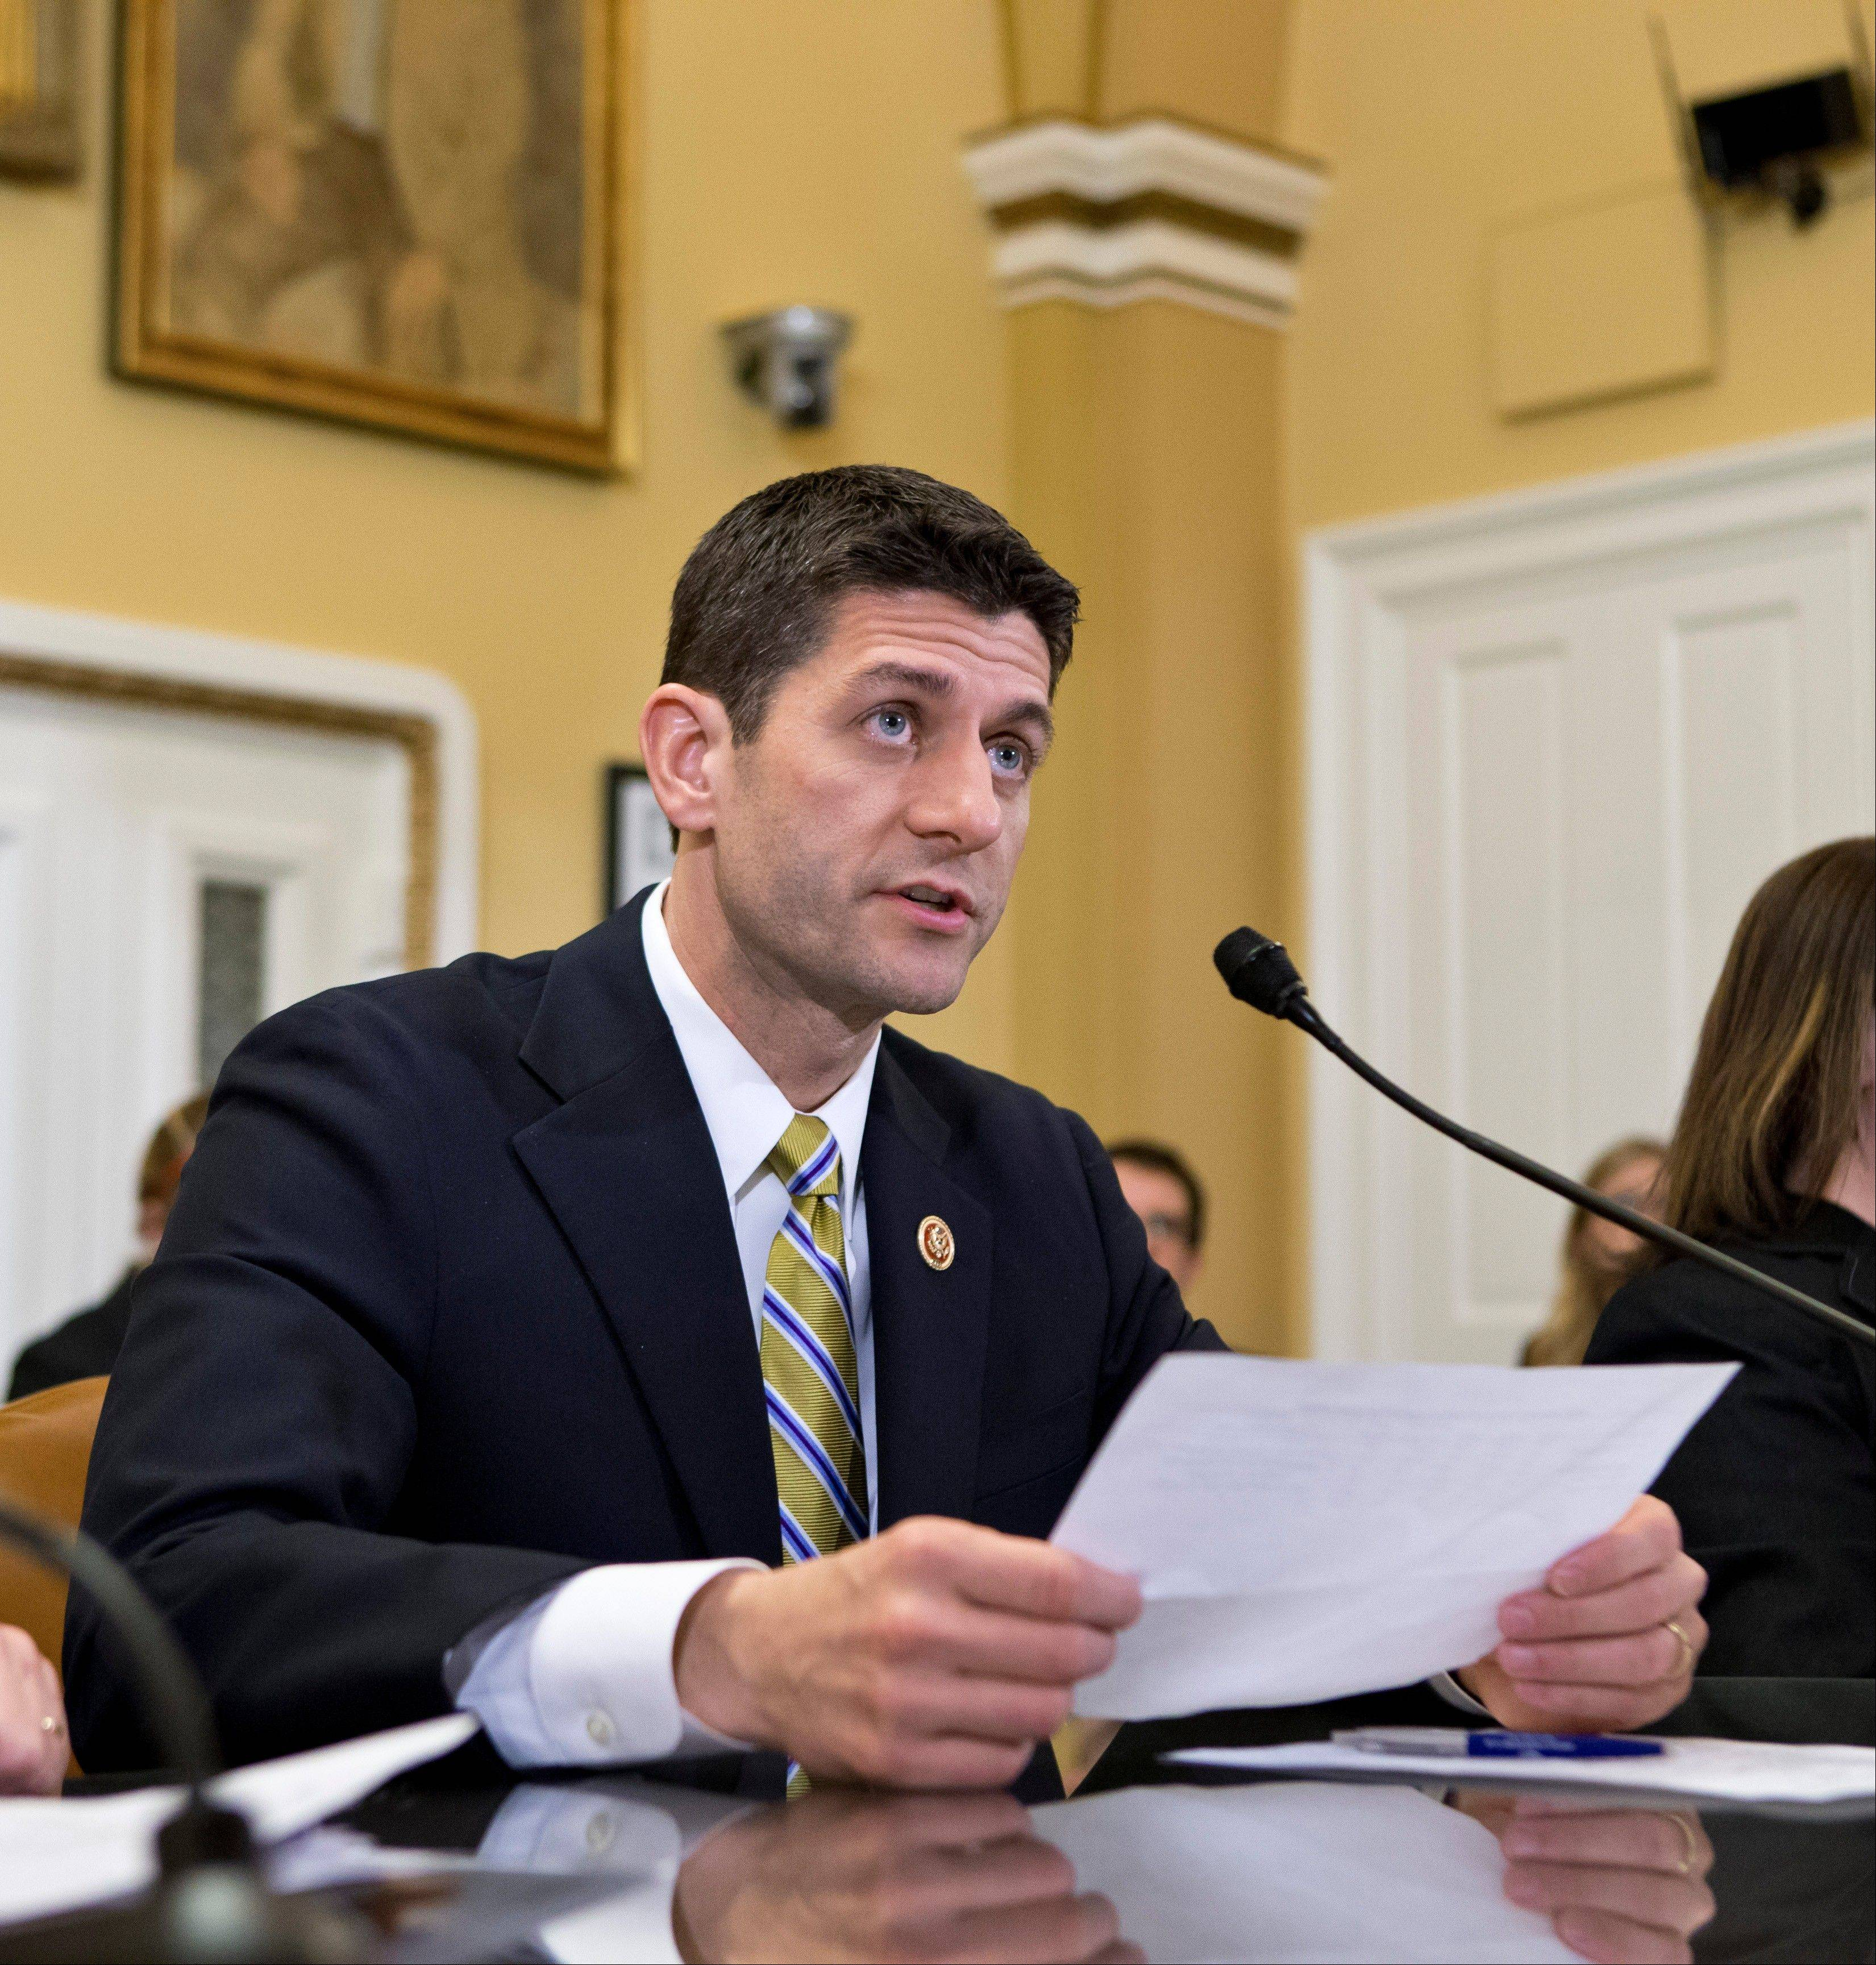 House Budget Committee Chairman Rep. Paul Ryan appears before the House Rules Committee to testify on his party's budget proposal at the Capitol Monday.